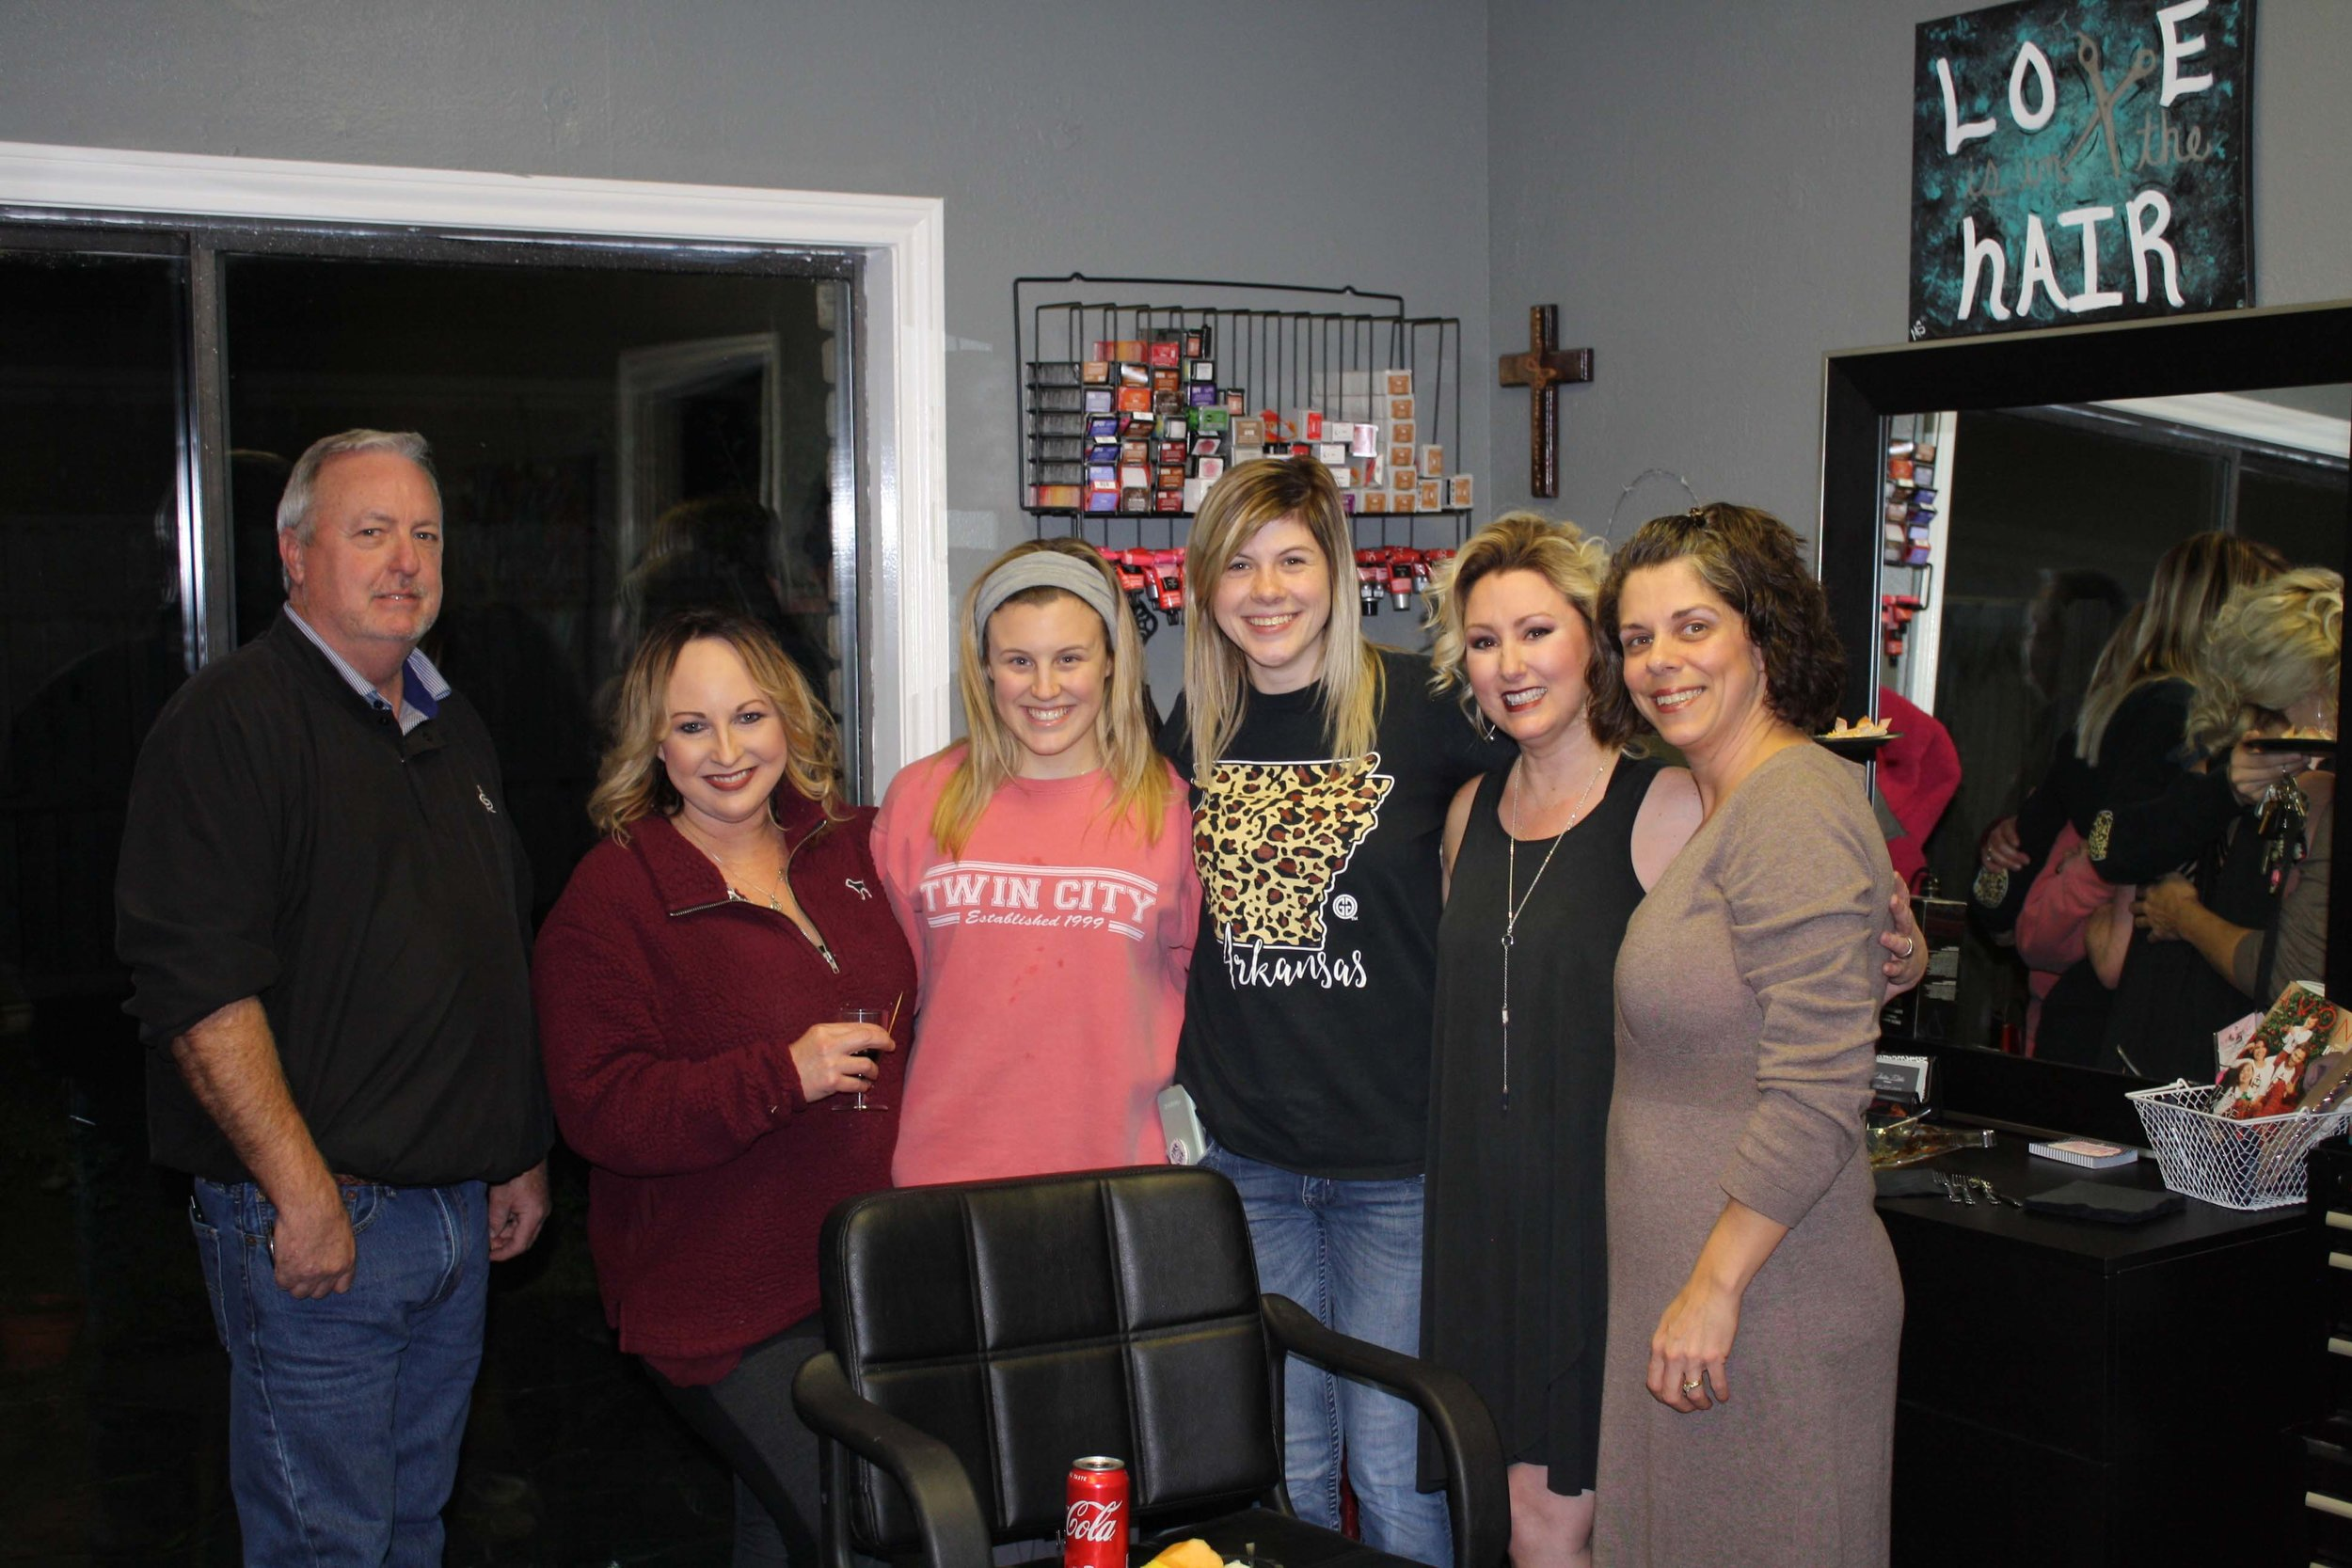 Randy Pounds, Rachel Purifoy, Anna Blair Lawrence, Harley McCaffe, Patty Lynn and Toni Brown